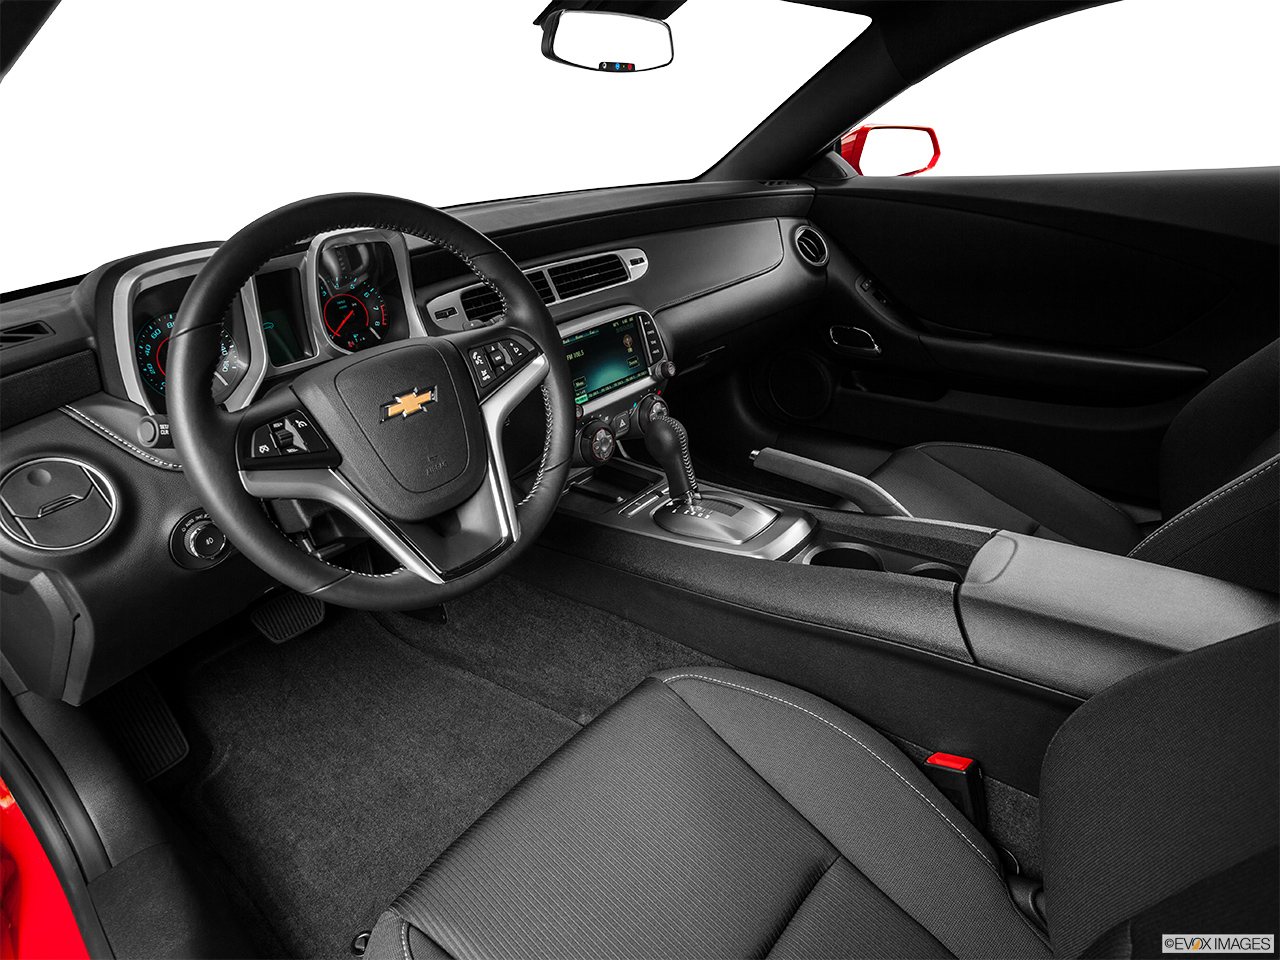 2015 Chevrolet Camaro LT W/2LT Coupe   Interior Hero (driveru0027s Side)